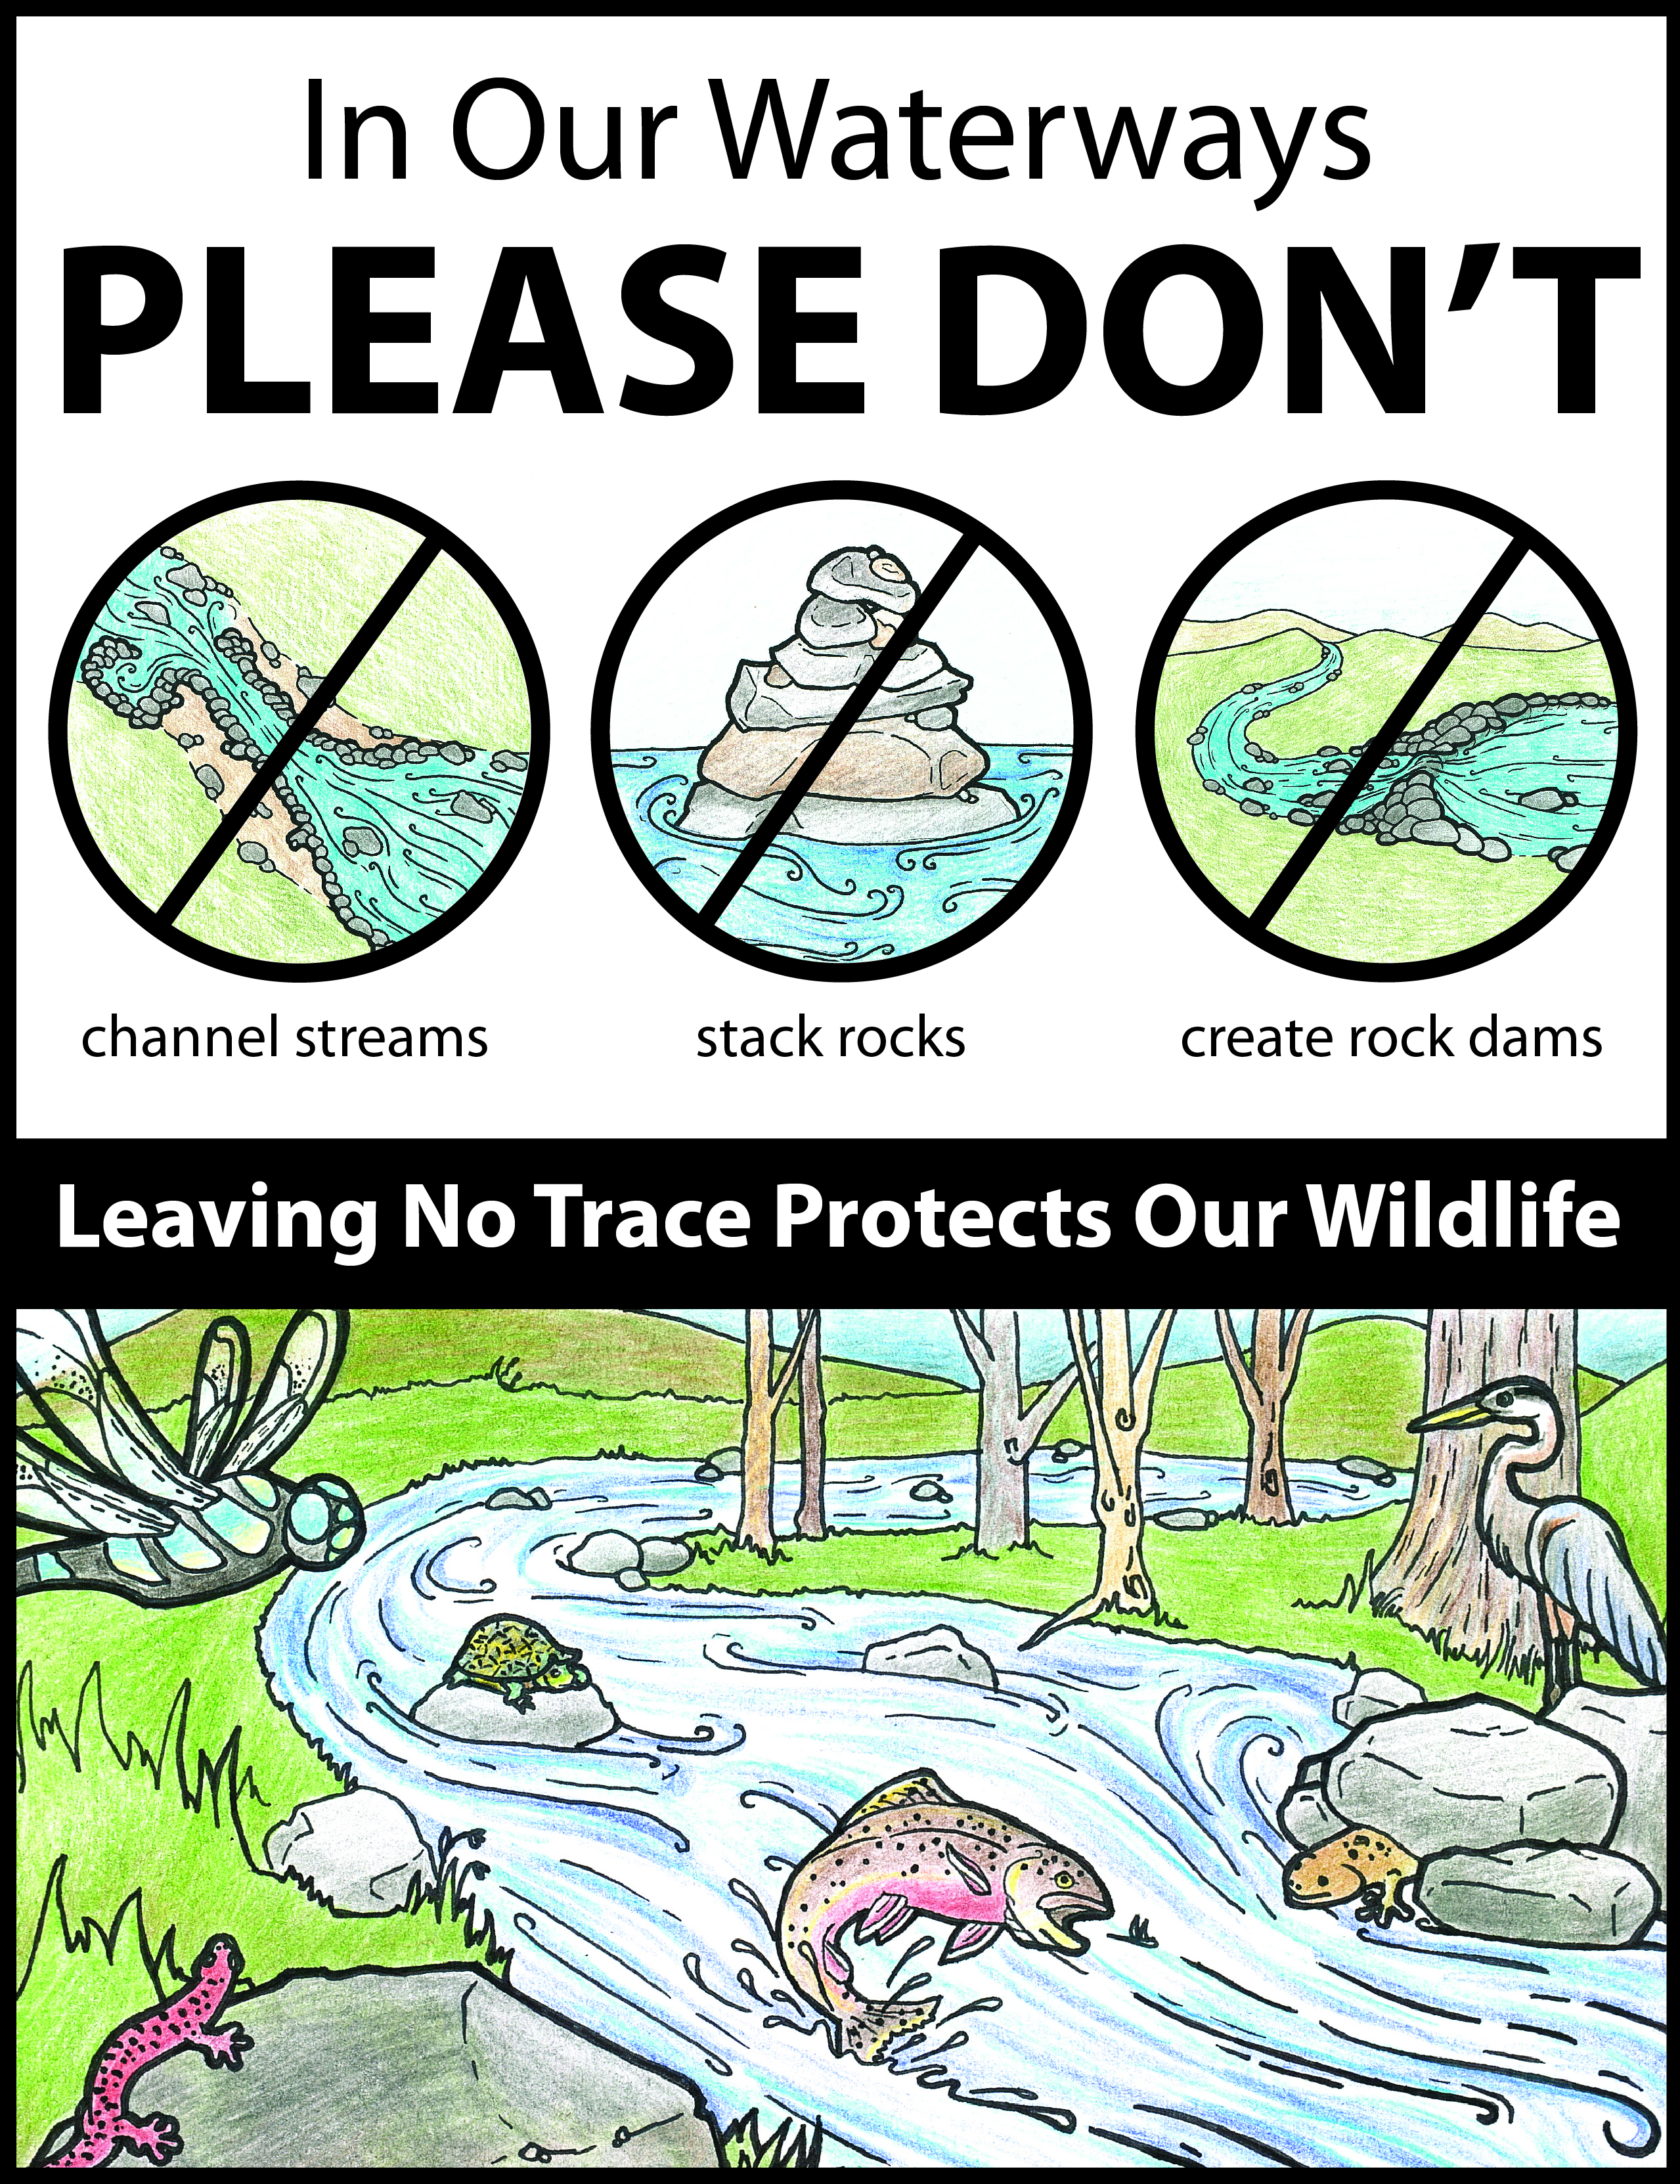 Visitors to any park or natural area should refrain from moving rocks and keep the native habitat in place in order to protect fish, salamanders, and many other aquatic species.